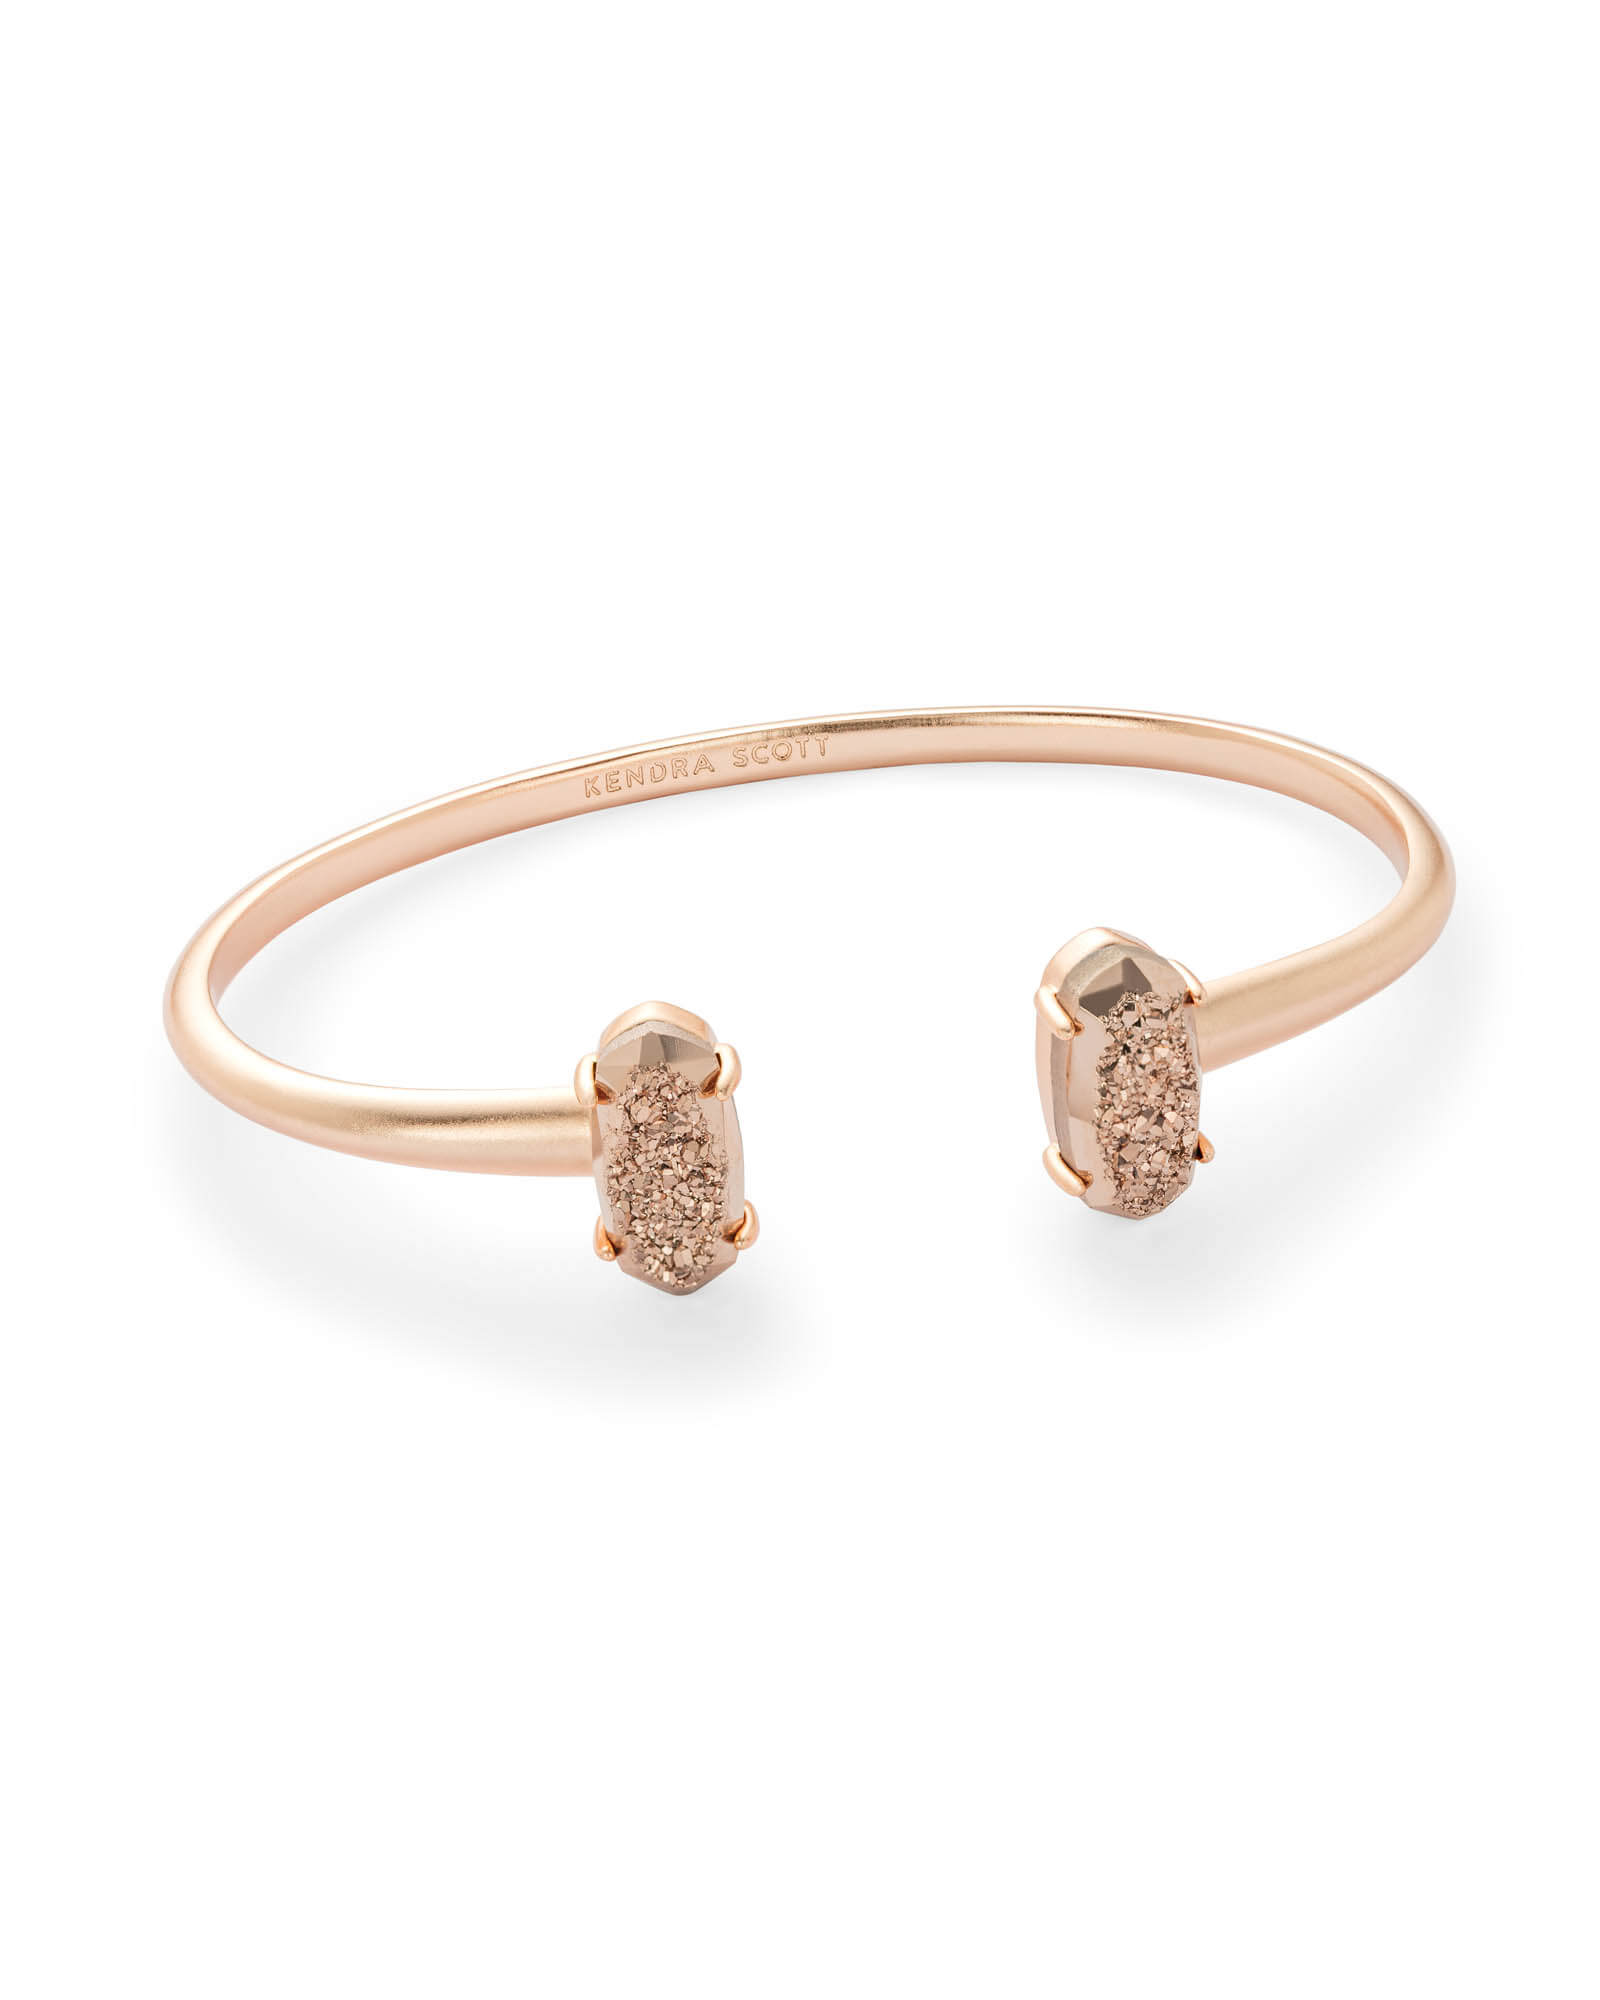 Edie Rose Gold Cuff Bracelet in Rose Gold Drusy